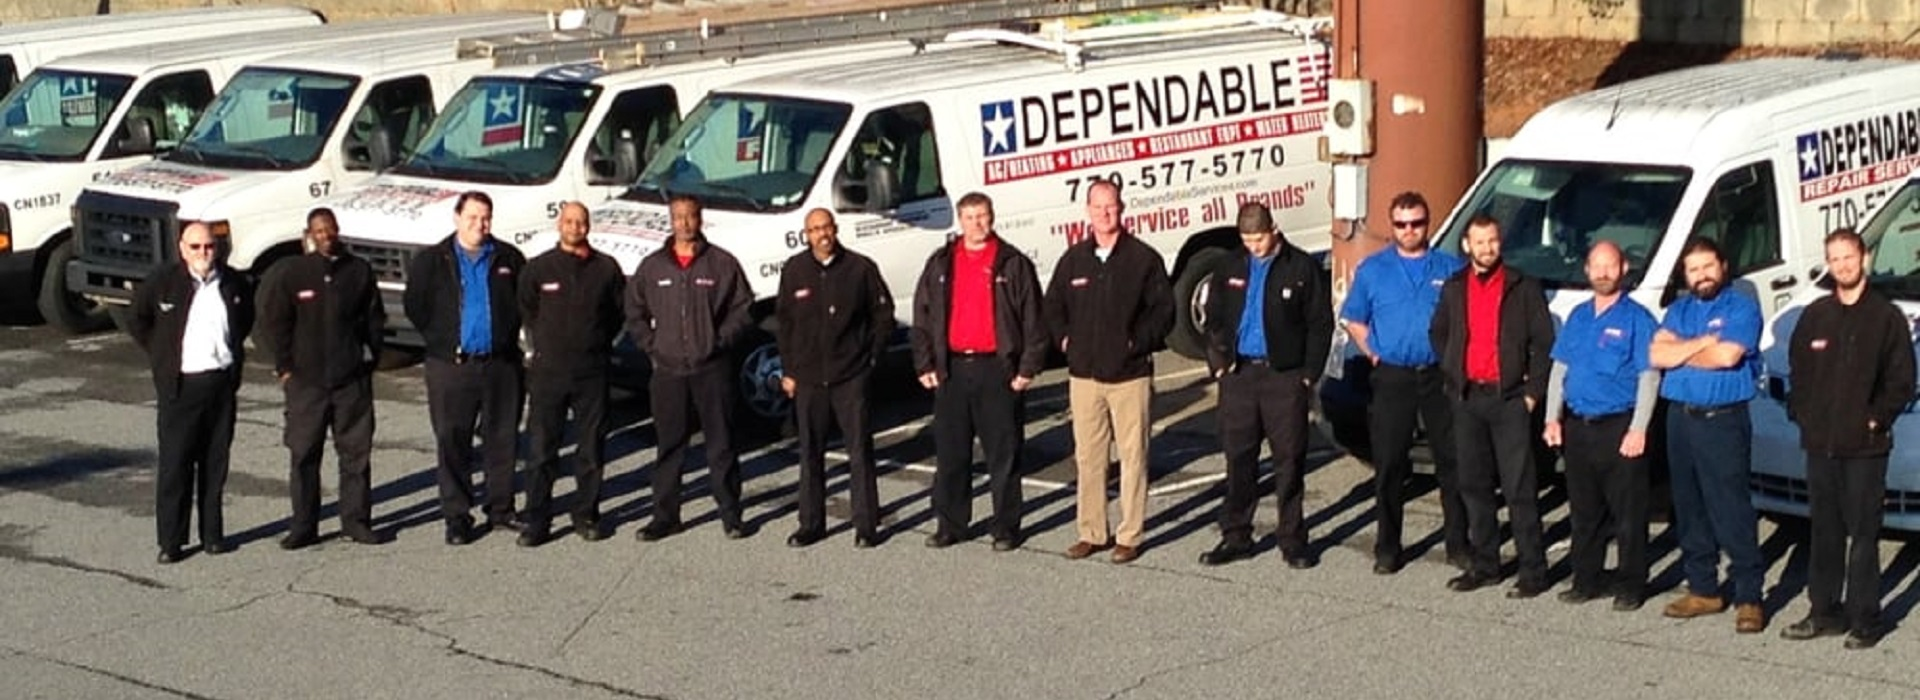 Dependable Arrpliance Repair Acworth Staff